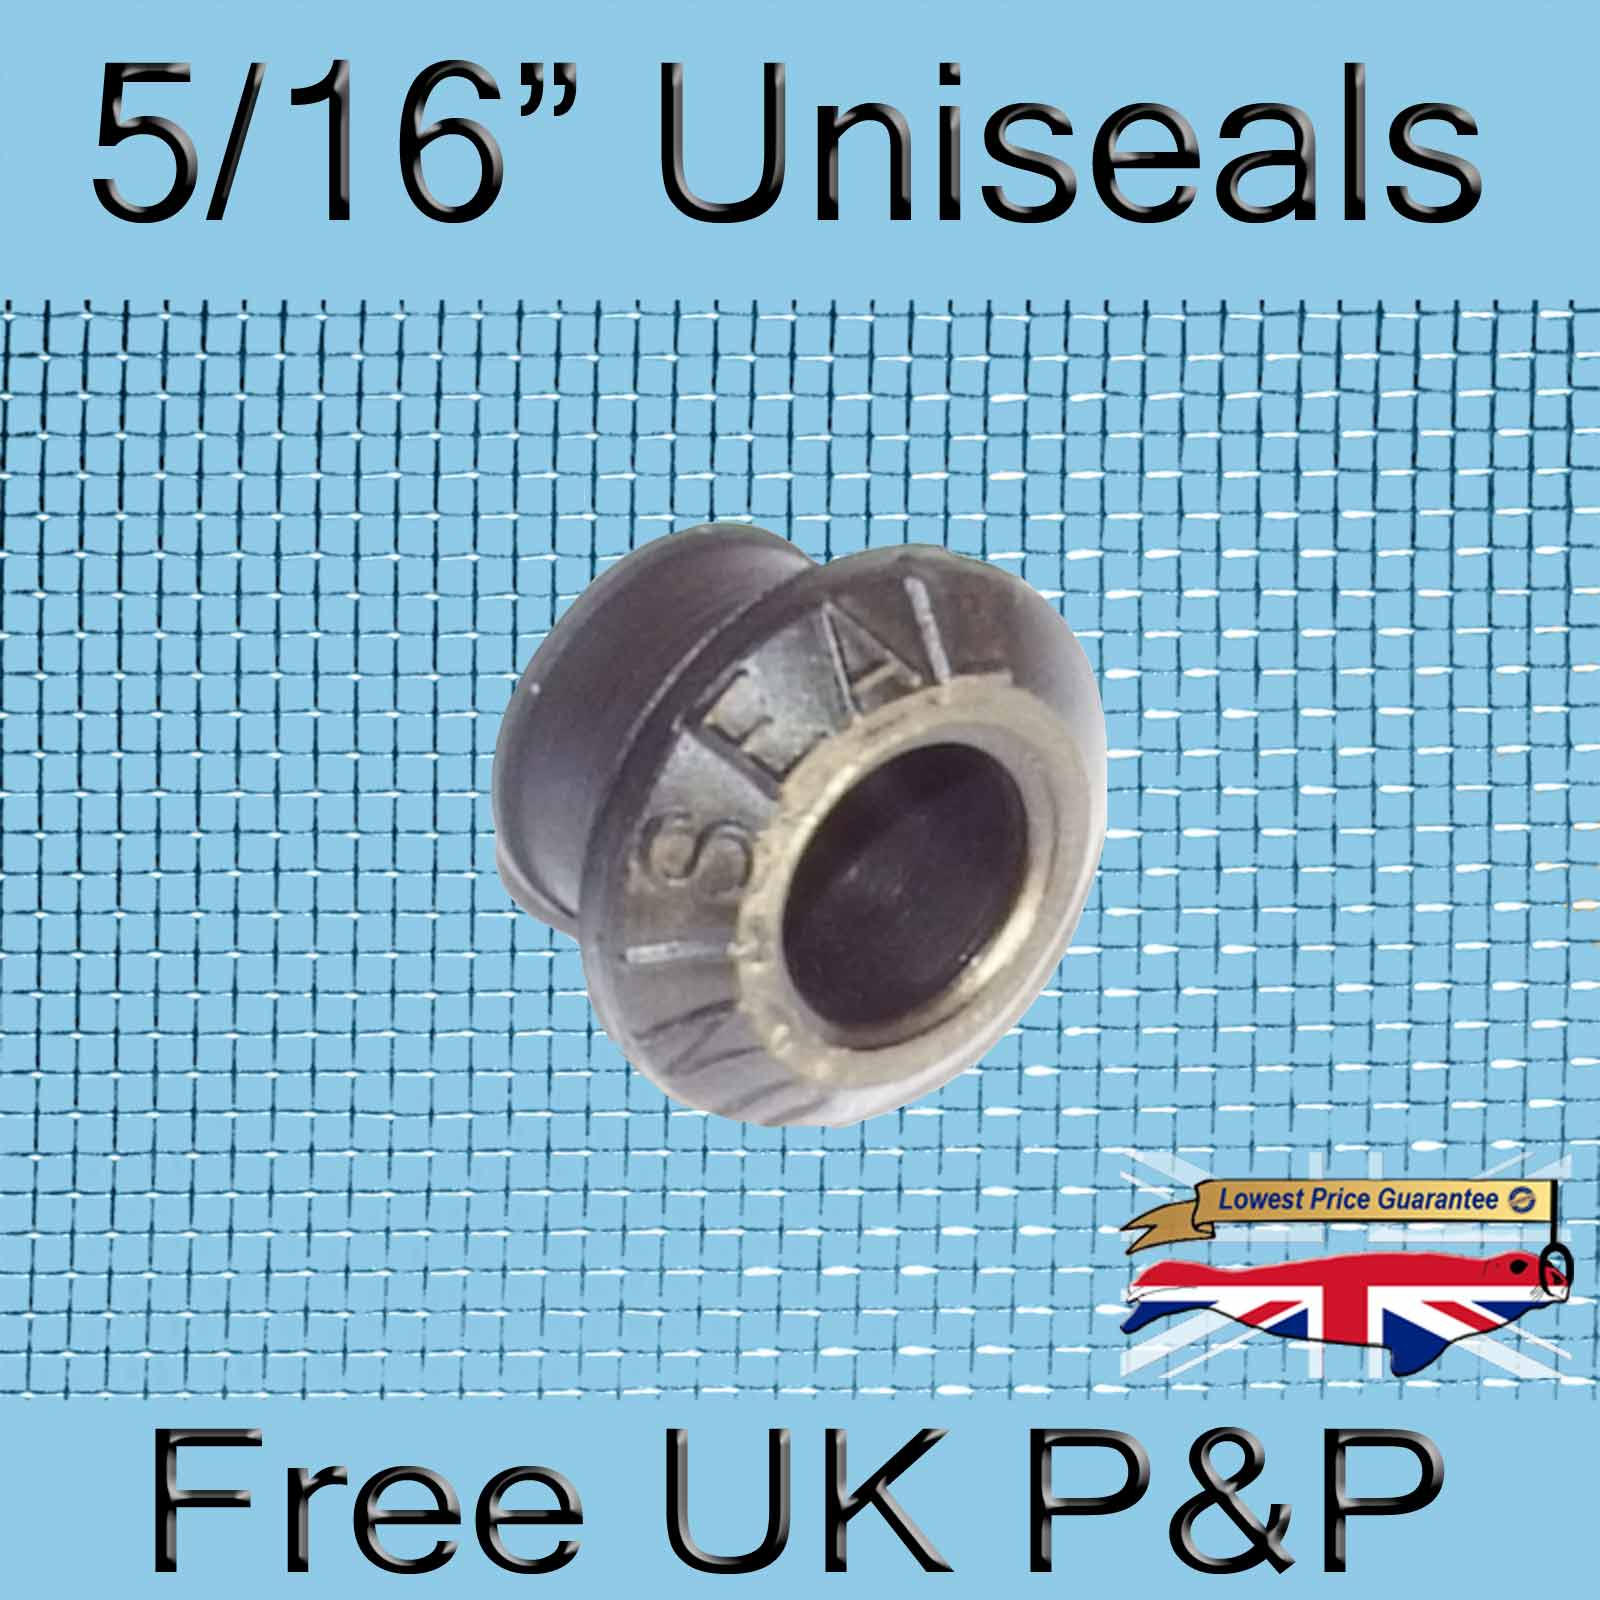 Magnify 5/16 inch Uniseal photo 1xfive-sixteenths-Uniseal-Tank-Connector.jpg